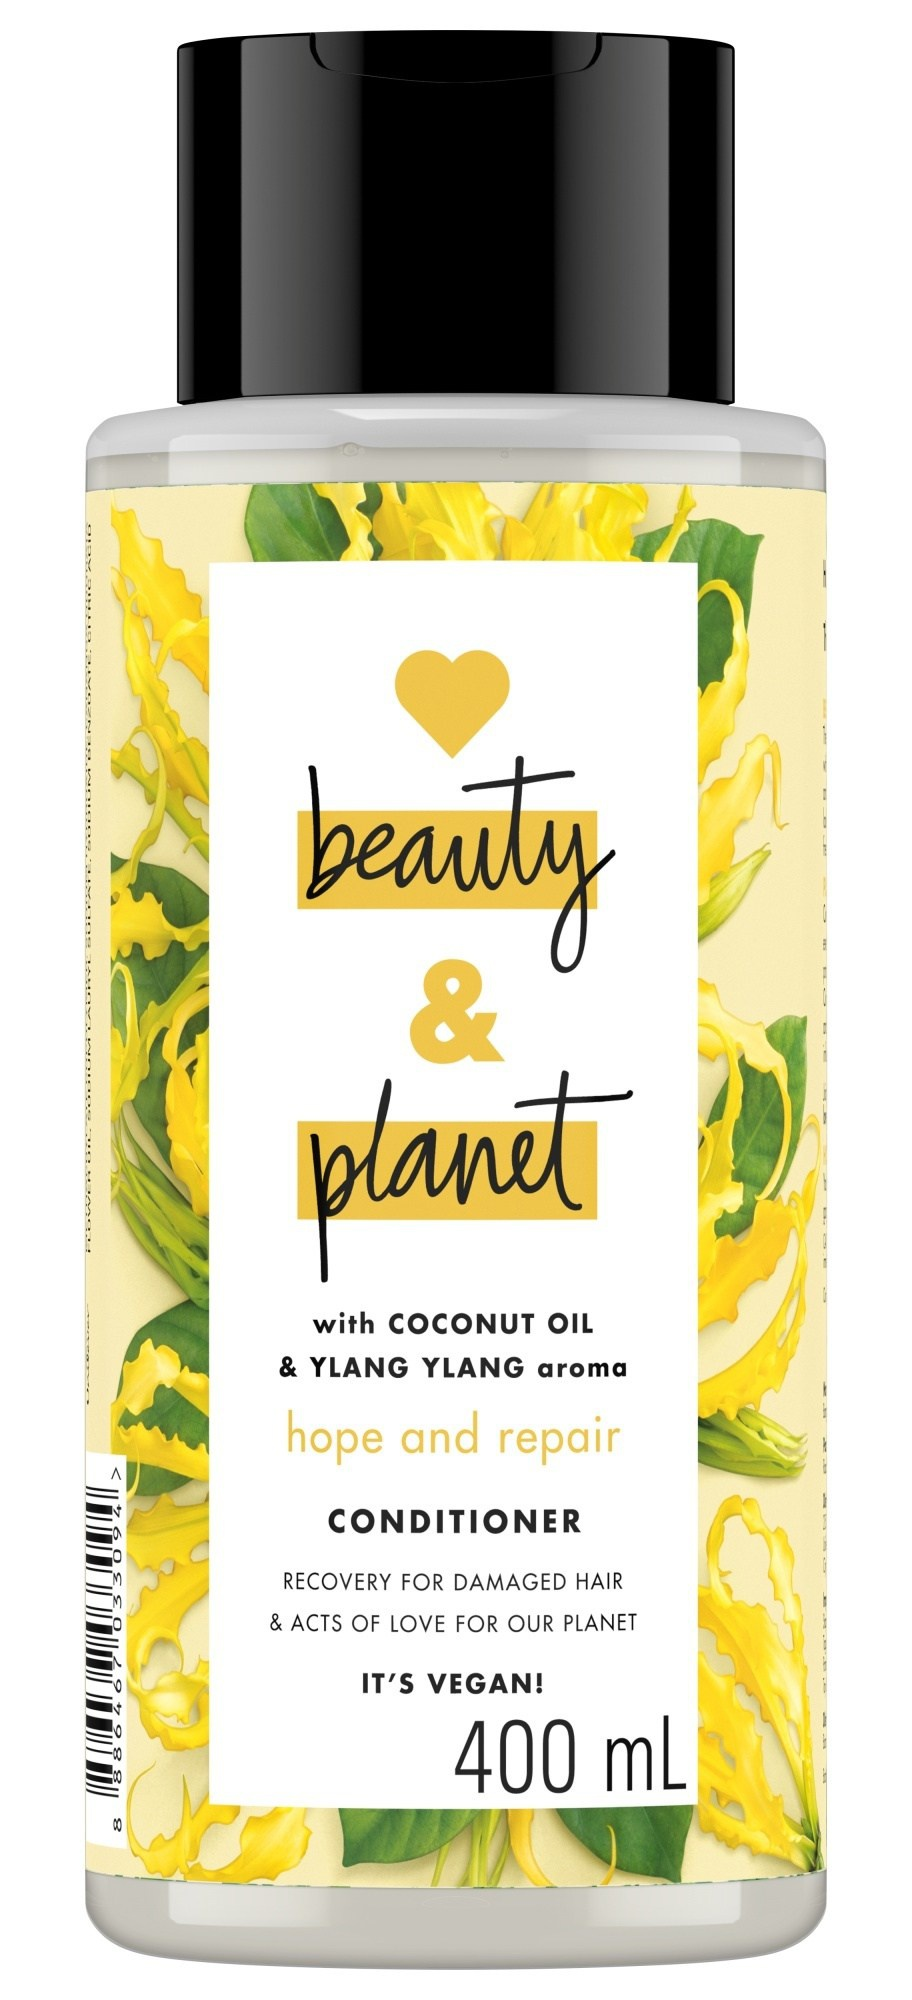 Love beauty and planet Coconut Oil And Ylang Ylang Aroma Conditioner